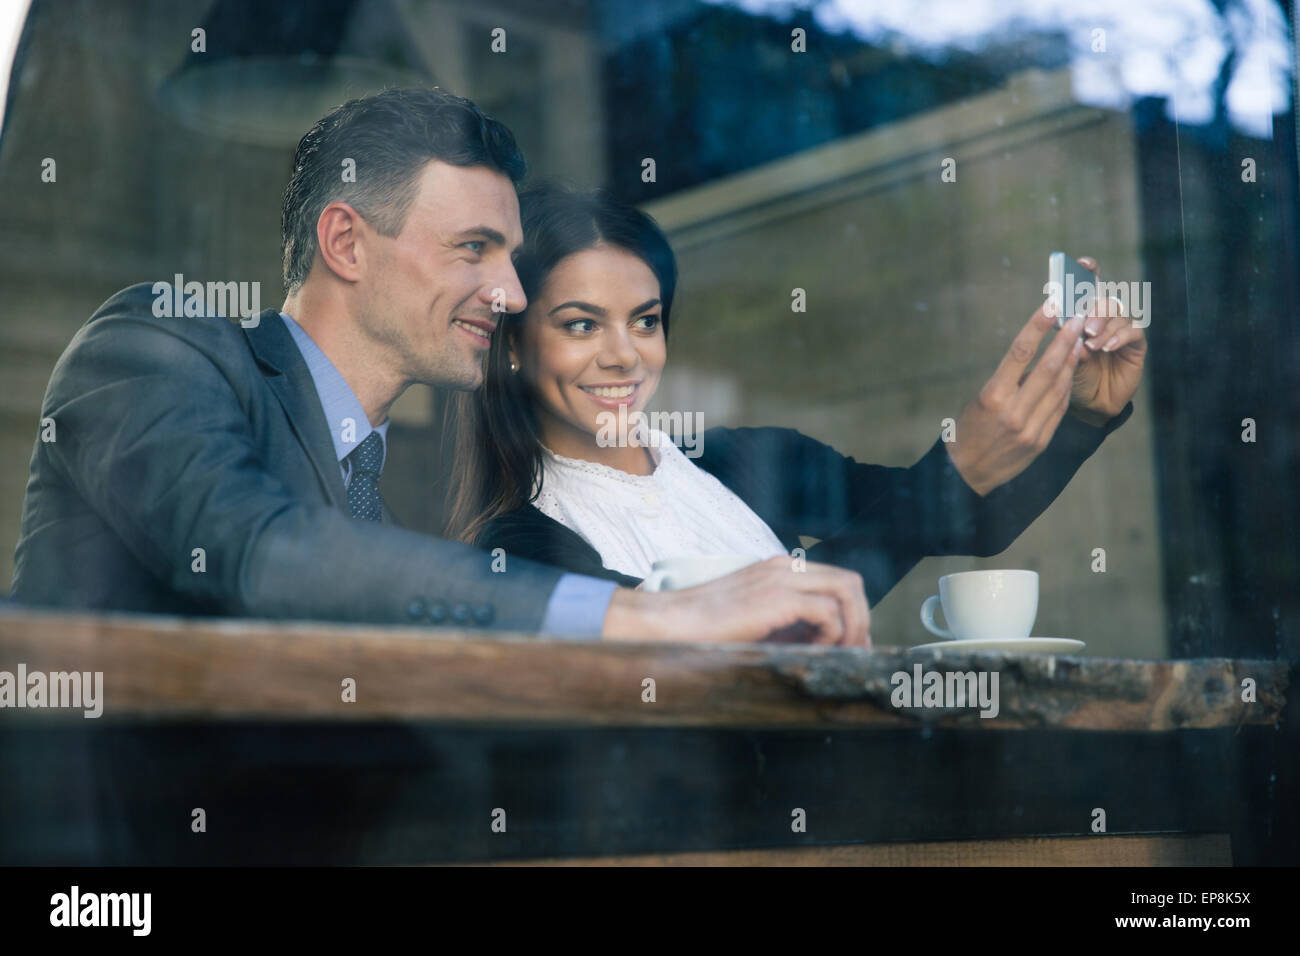 Smiling businesswoman and businessman making photo selfies sur smartphone in cafe Photo Stock